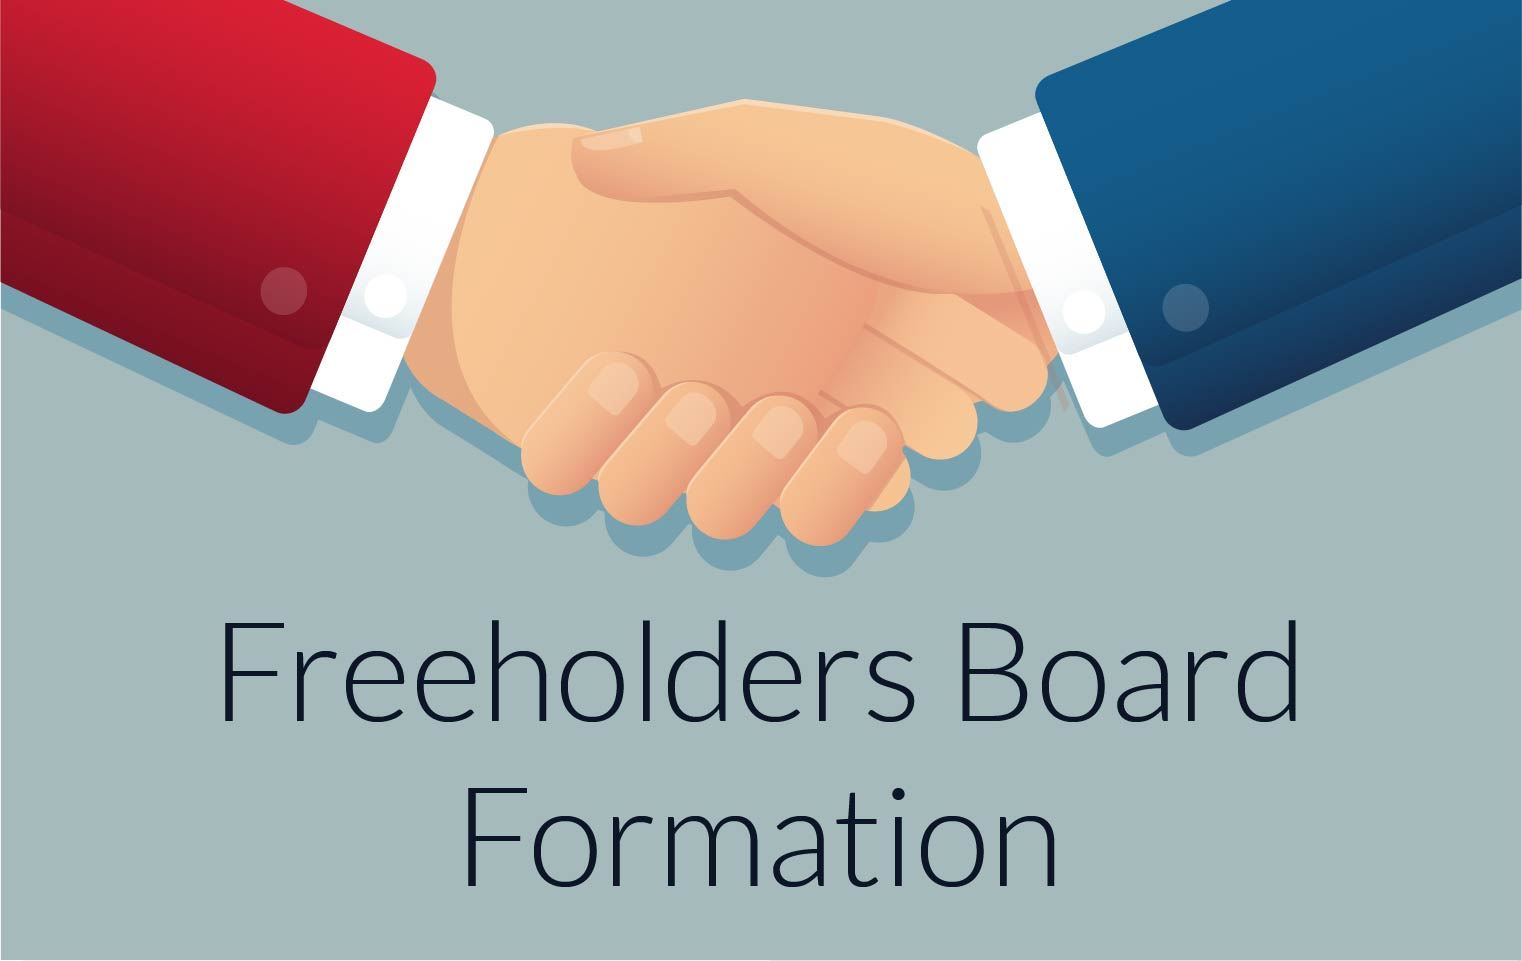 Freeholders Board Formation